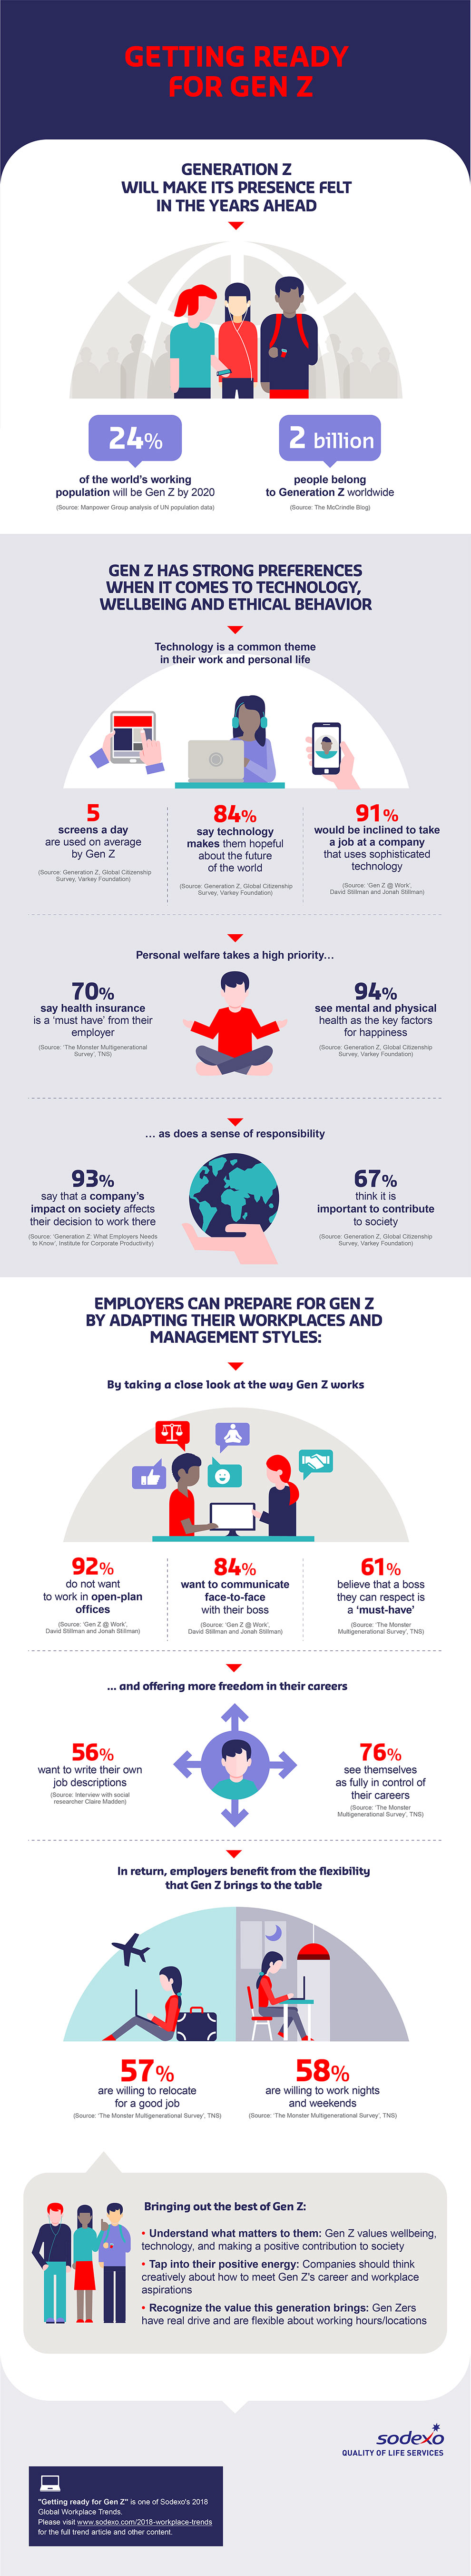 Infographic: Getting Ready for Gen Z